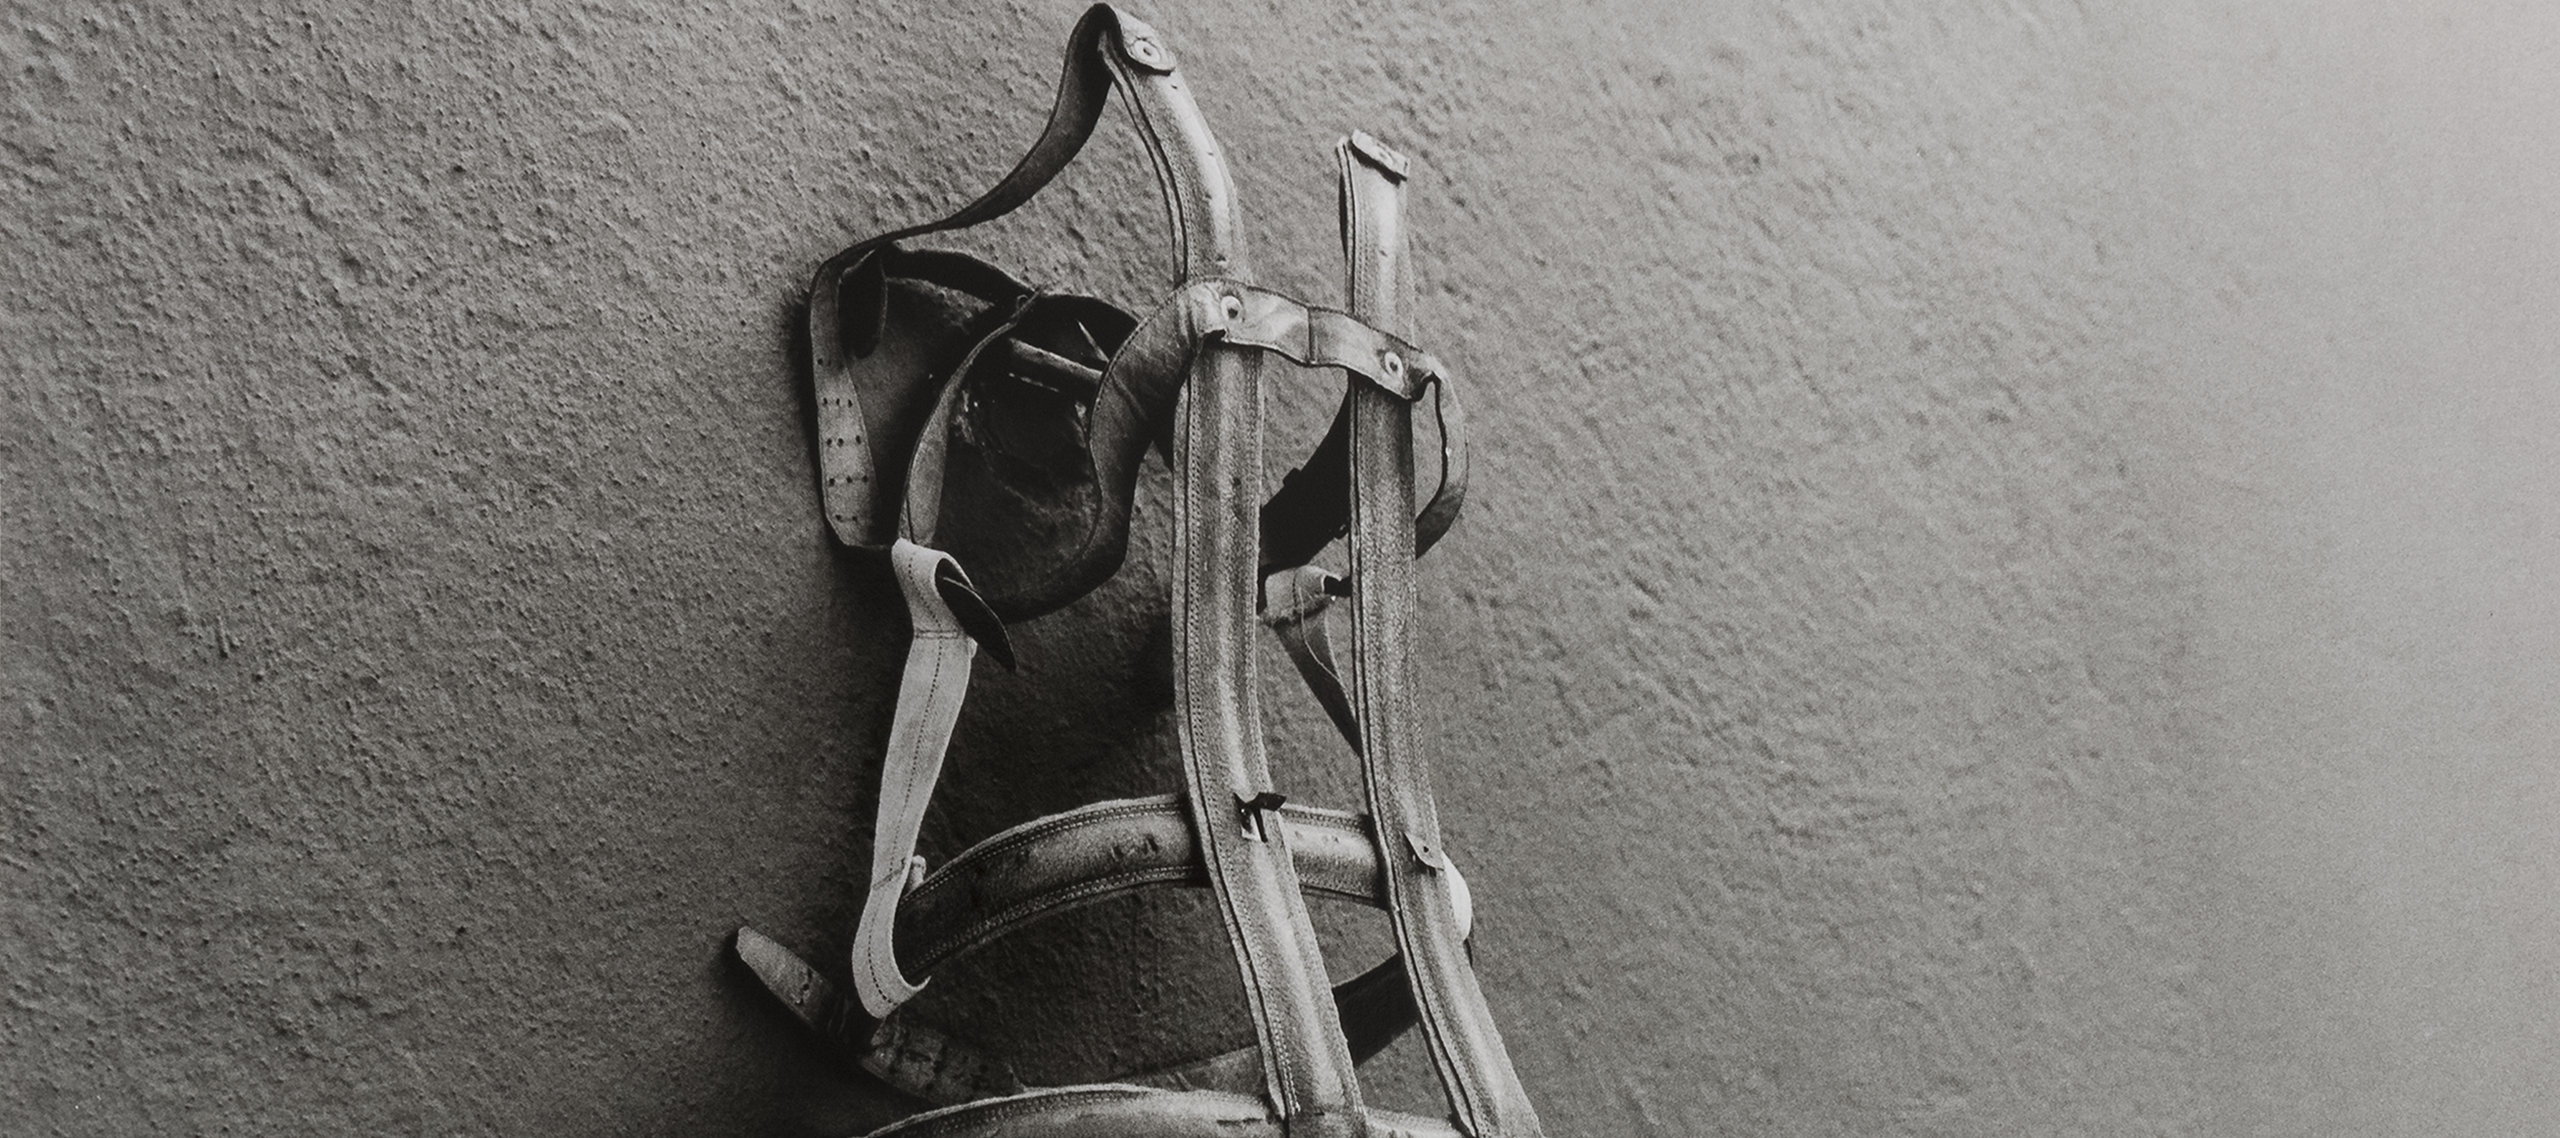 A black and white photograph of a worn body brace pinned on a blank concrete wall. The photograph is taken from slightly below and to the left of the brace. Similar to a corset, the brace itself is simultaneously lonely, foreboding, and empty as it hangs.